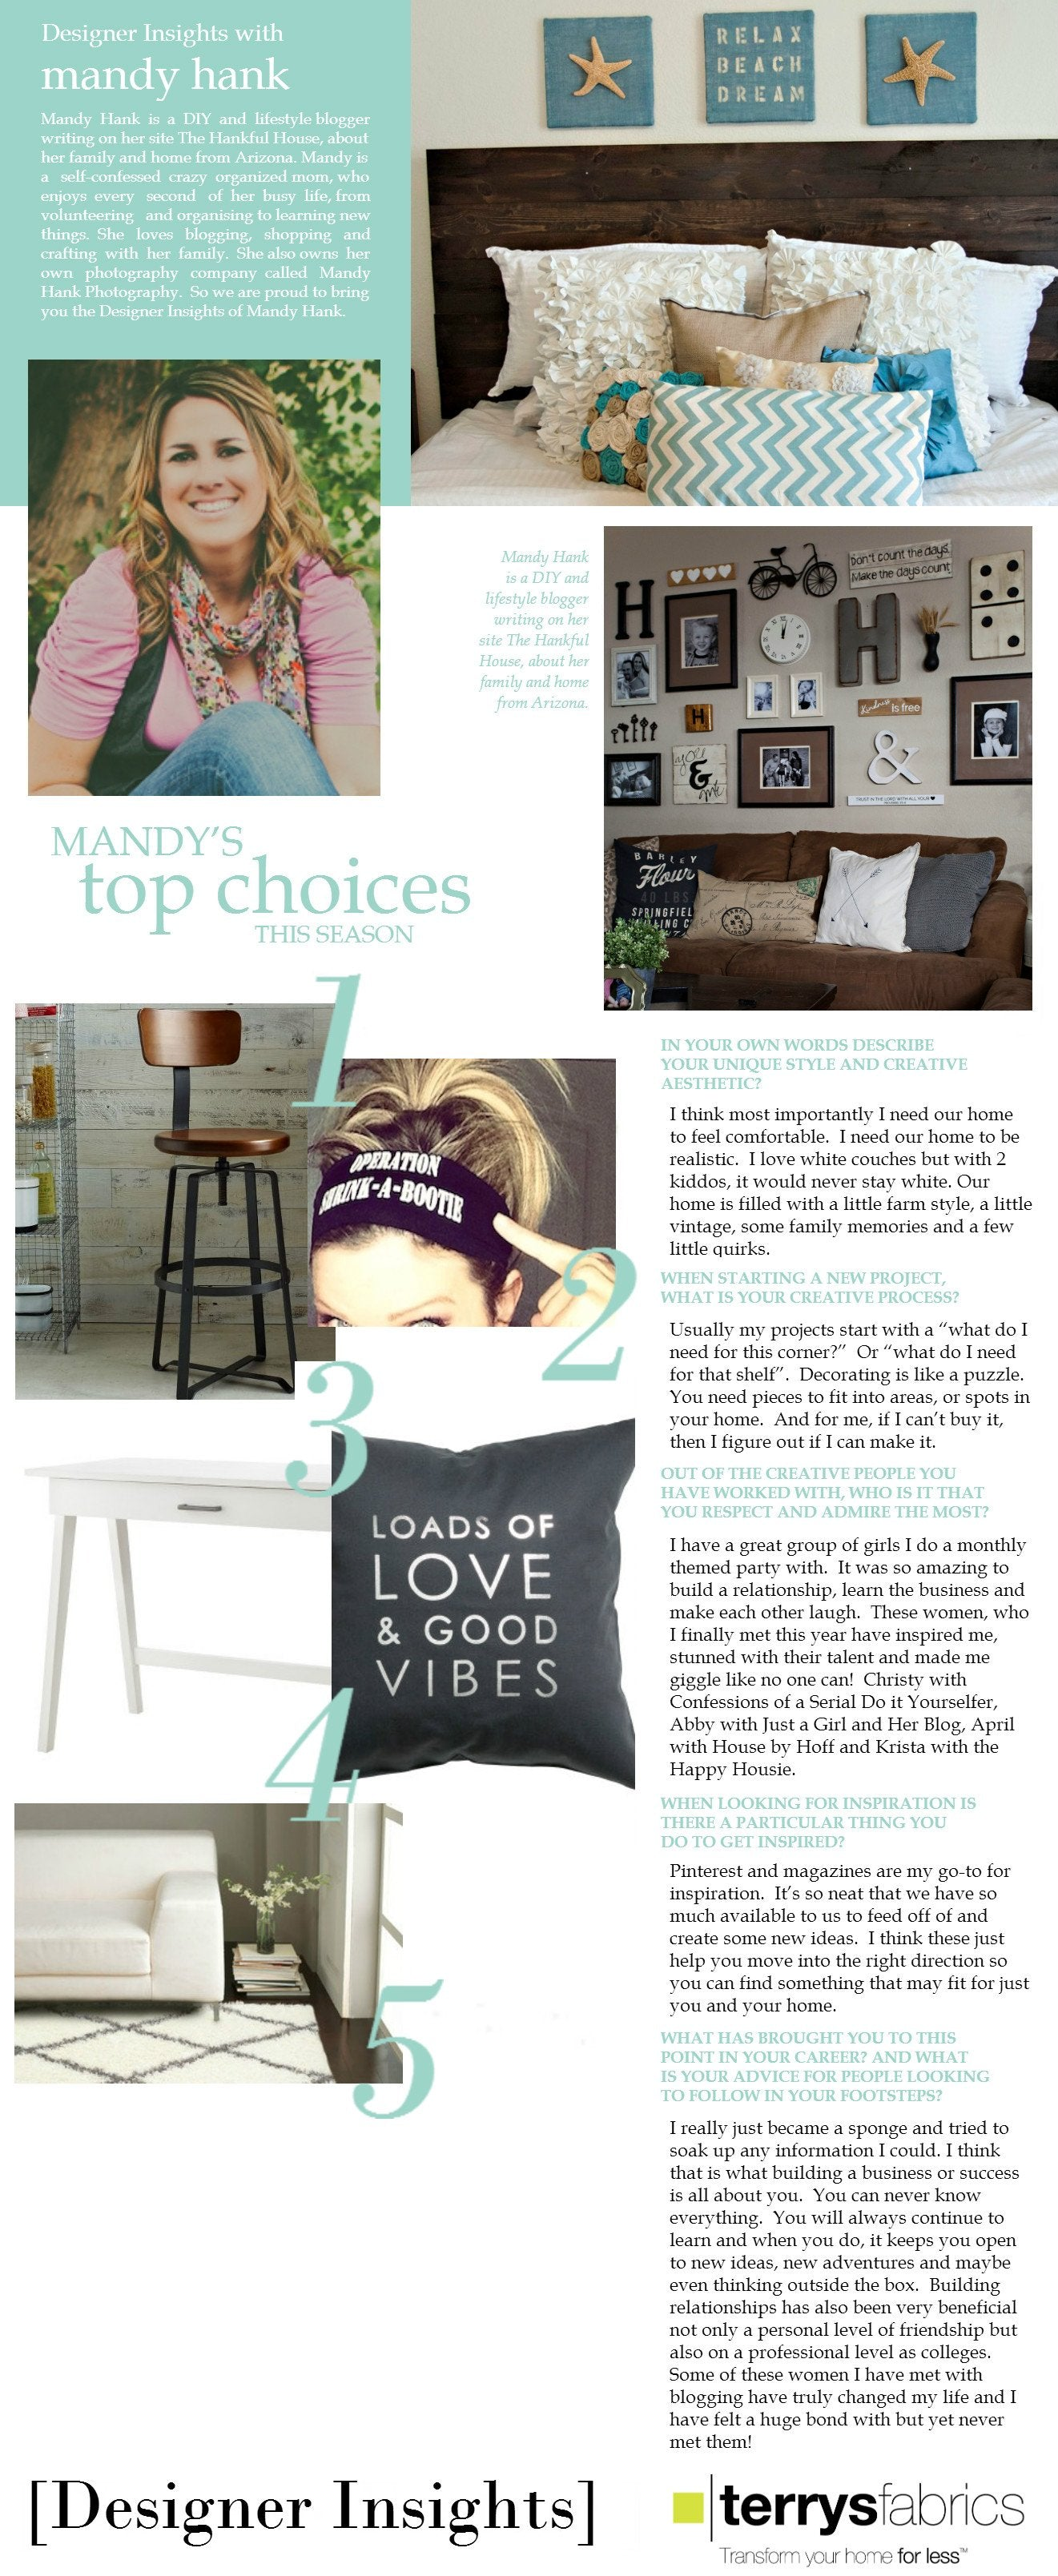 Designer Insights - Mandy Hank